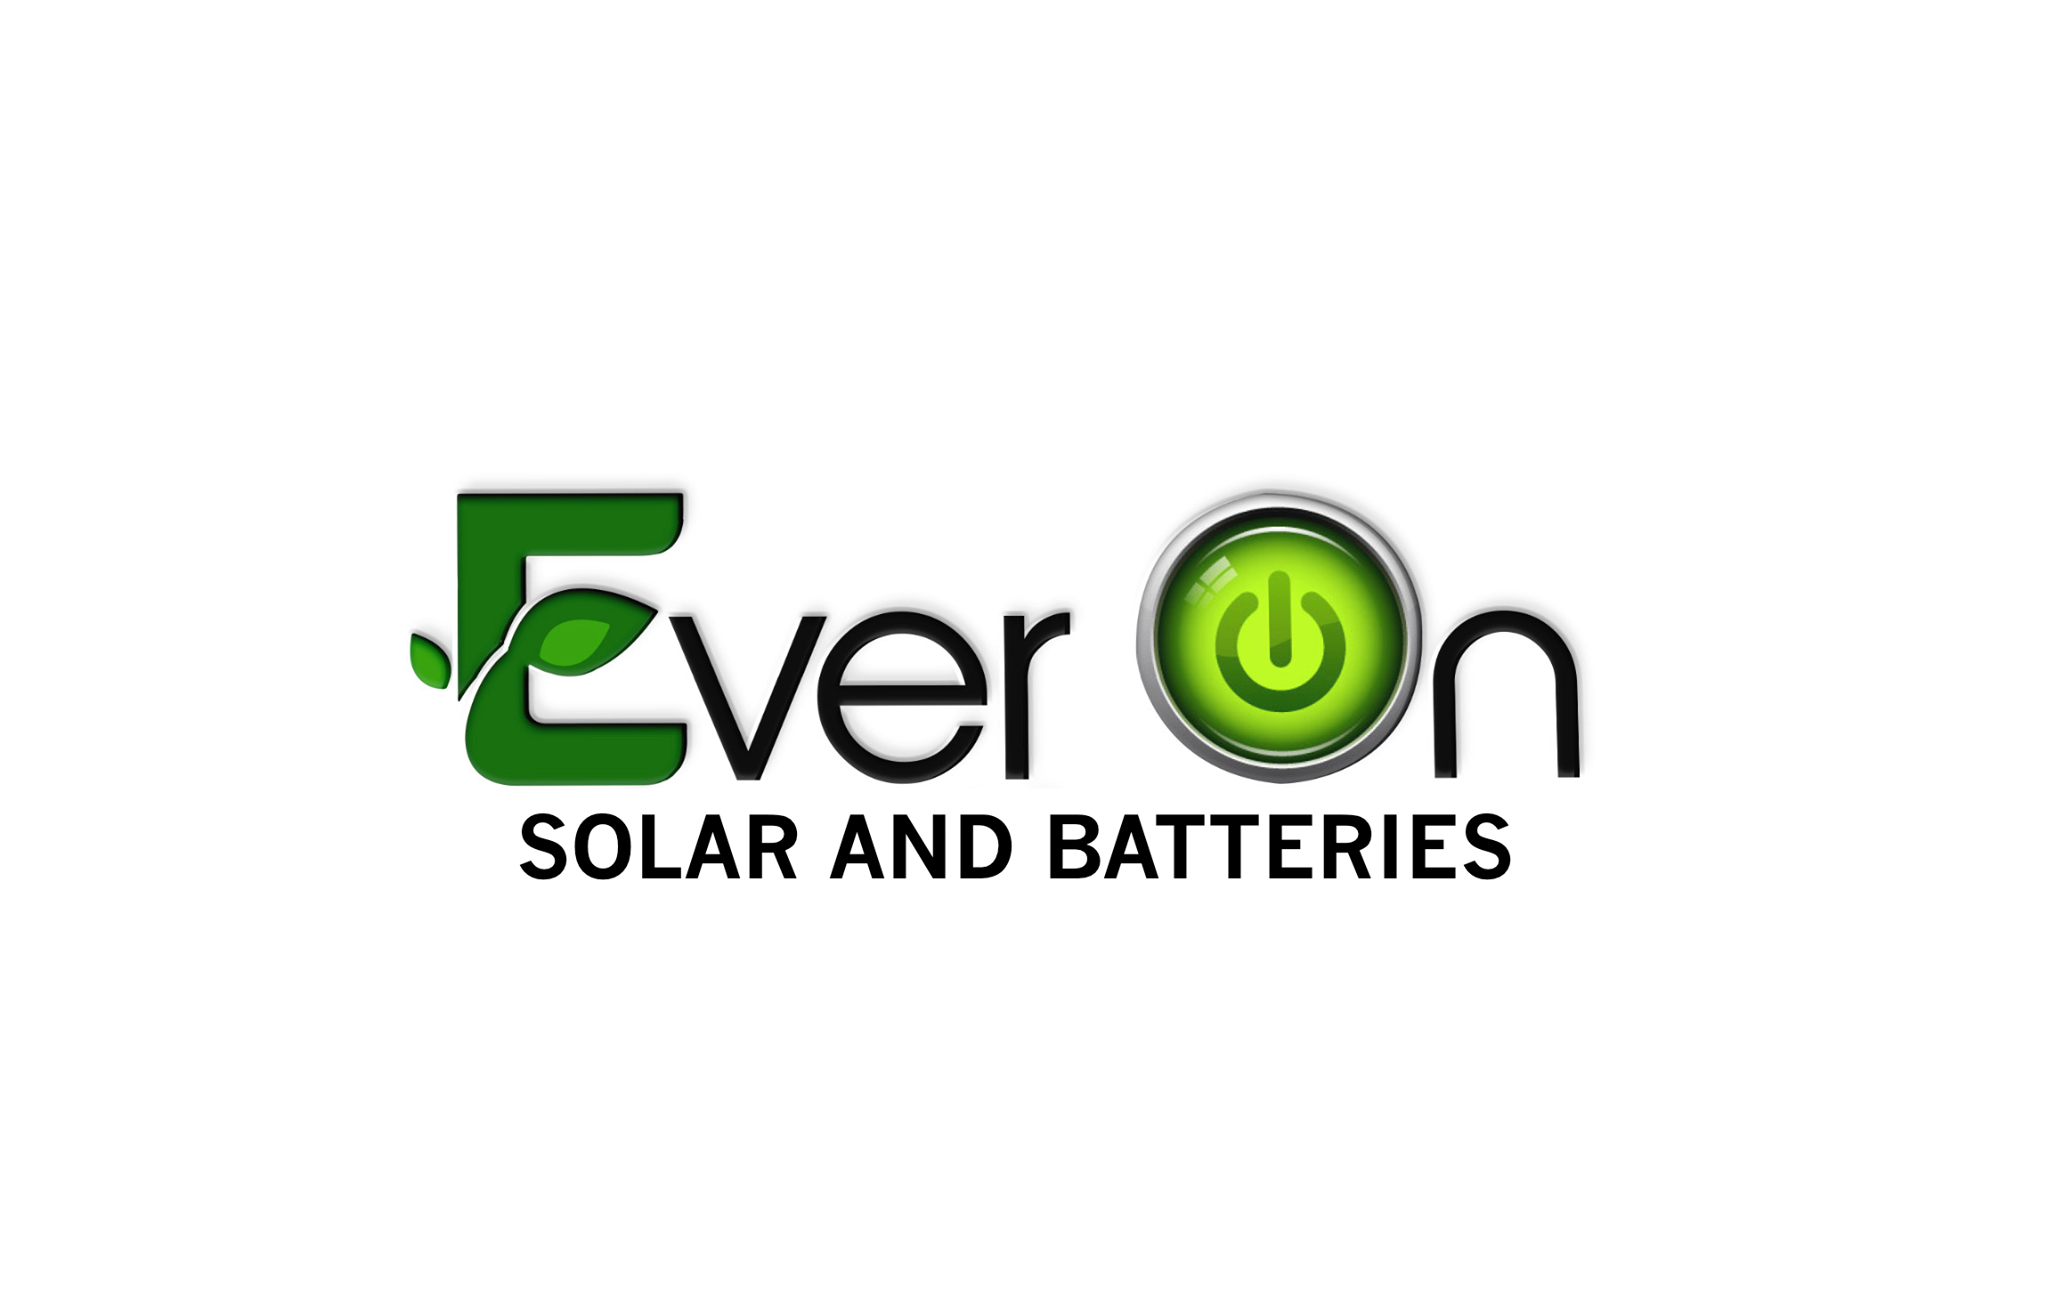 Ever On Solar and Batteries - Mudgeeraba, QLD 4213 - 1800 383 766 | ShowMeLocal.com